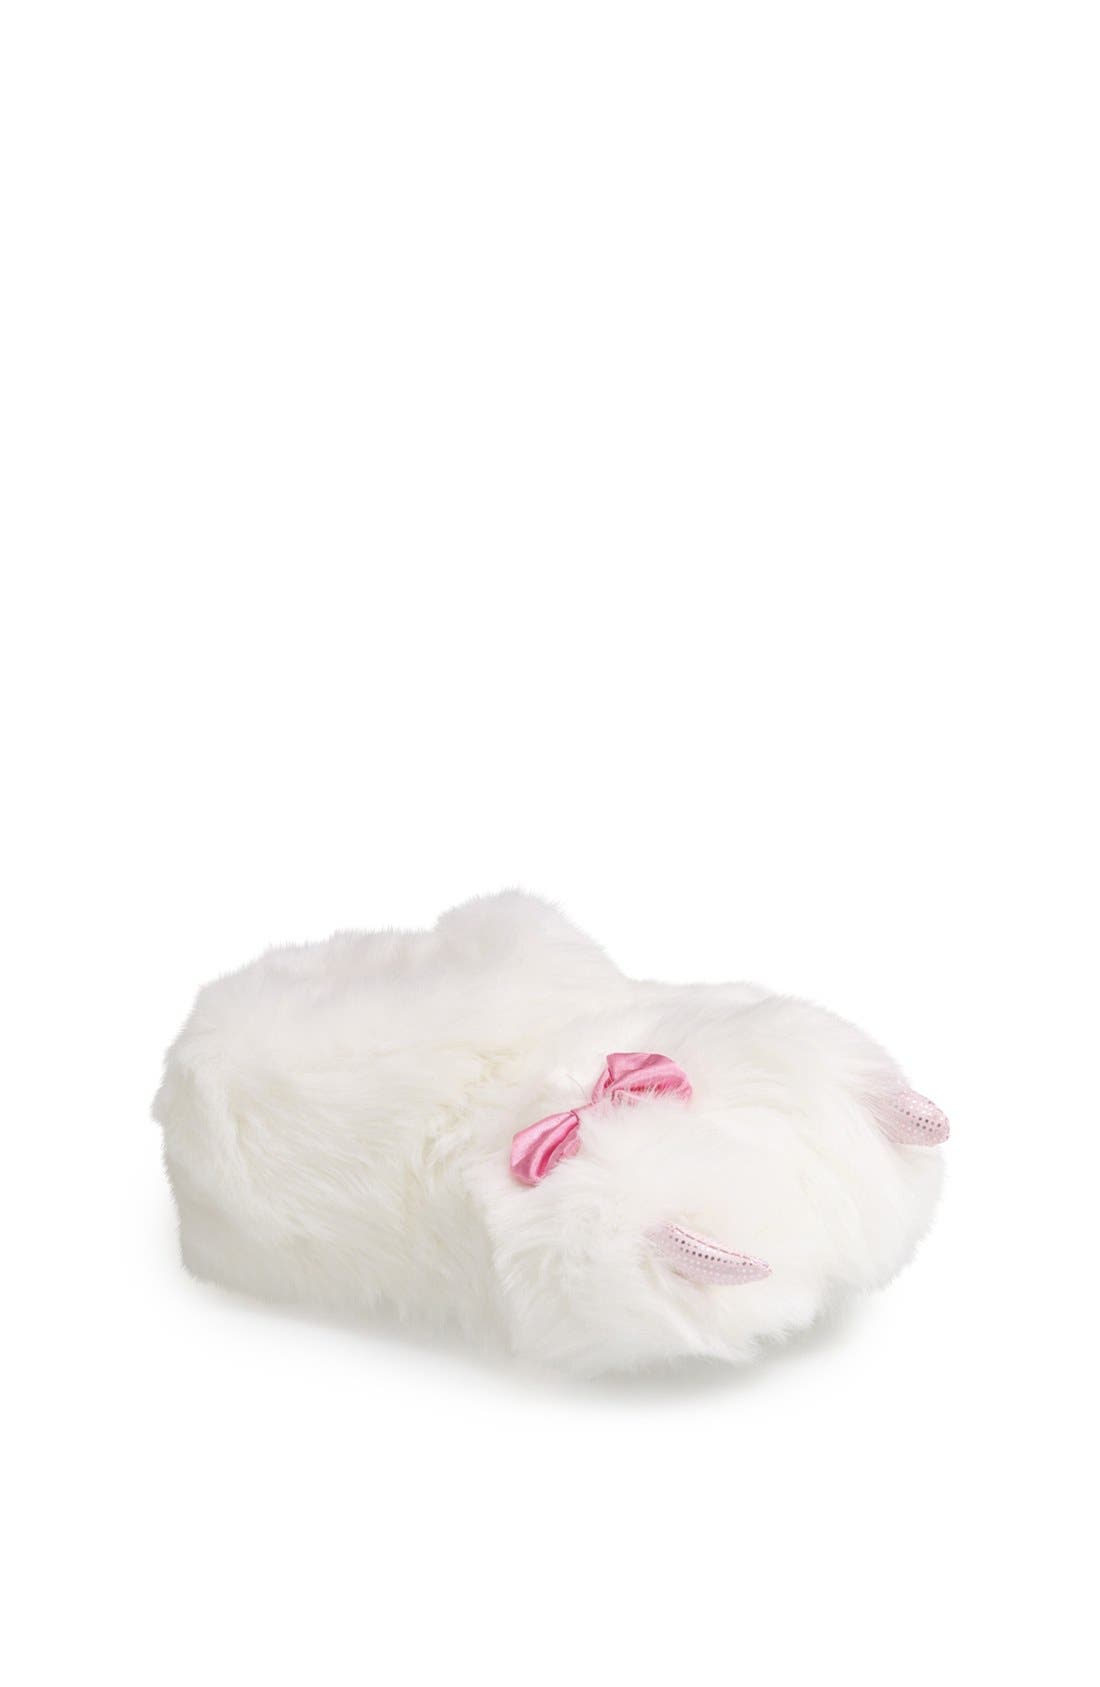 Main Image - Stride Rite 'Chloe' Bear Claw Slipper (Toddler Girls & Little Girls)